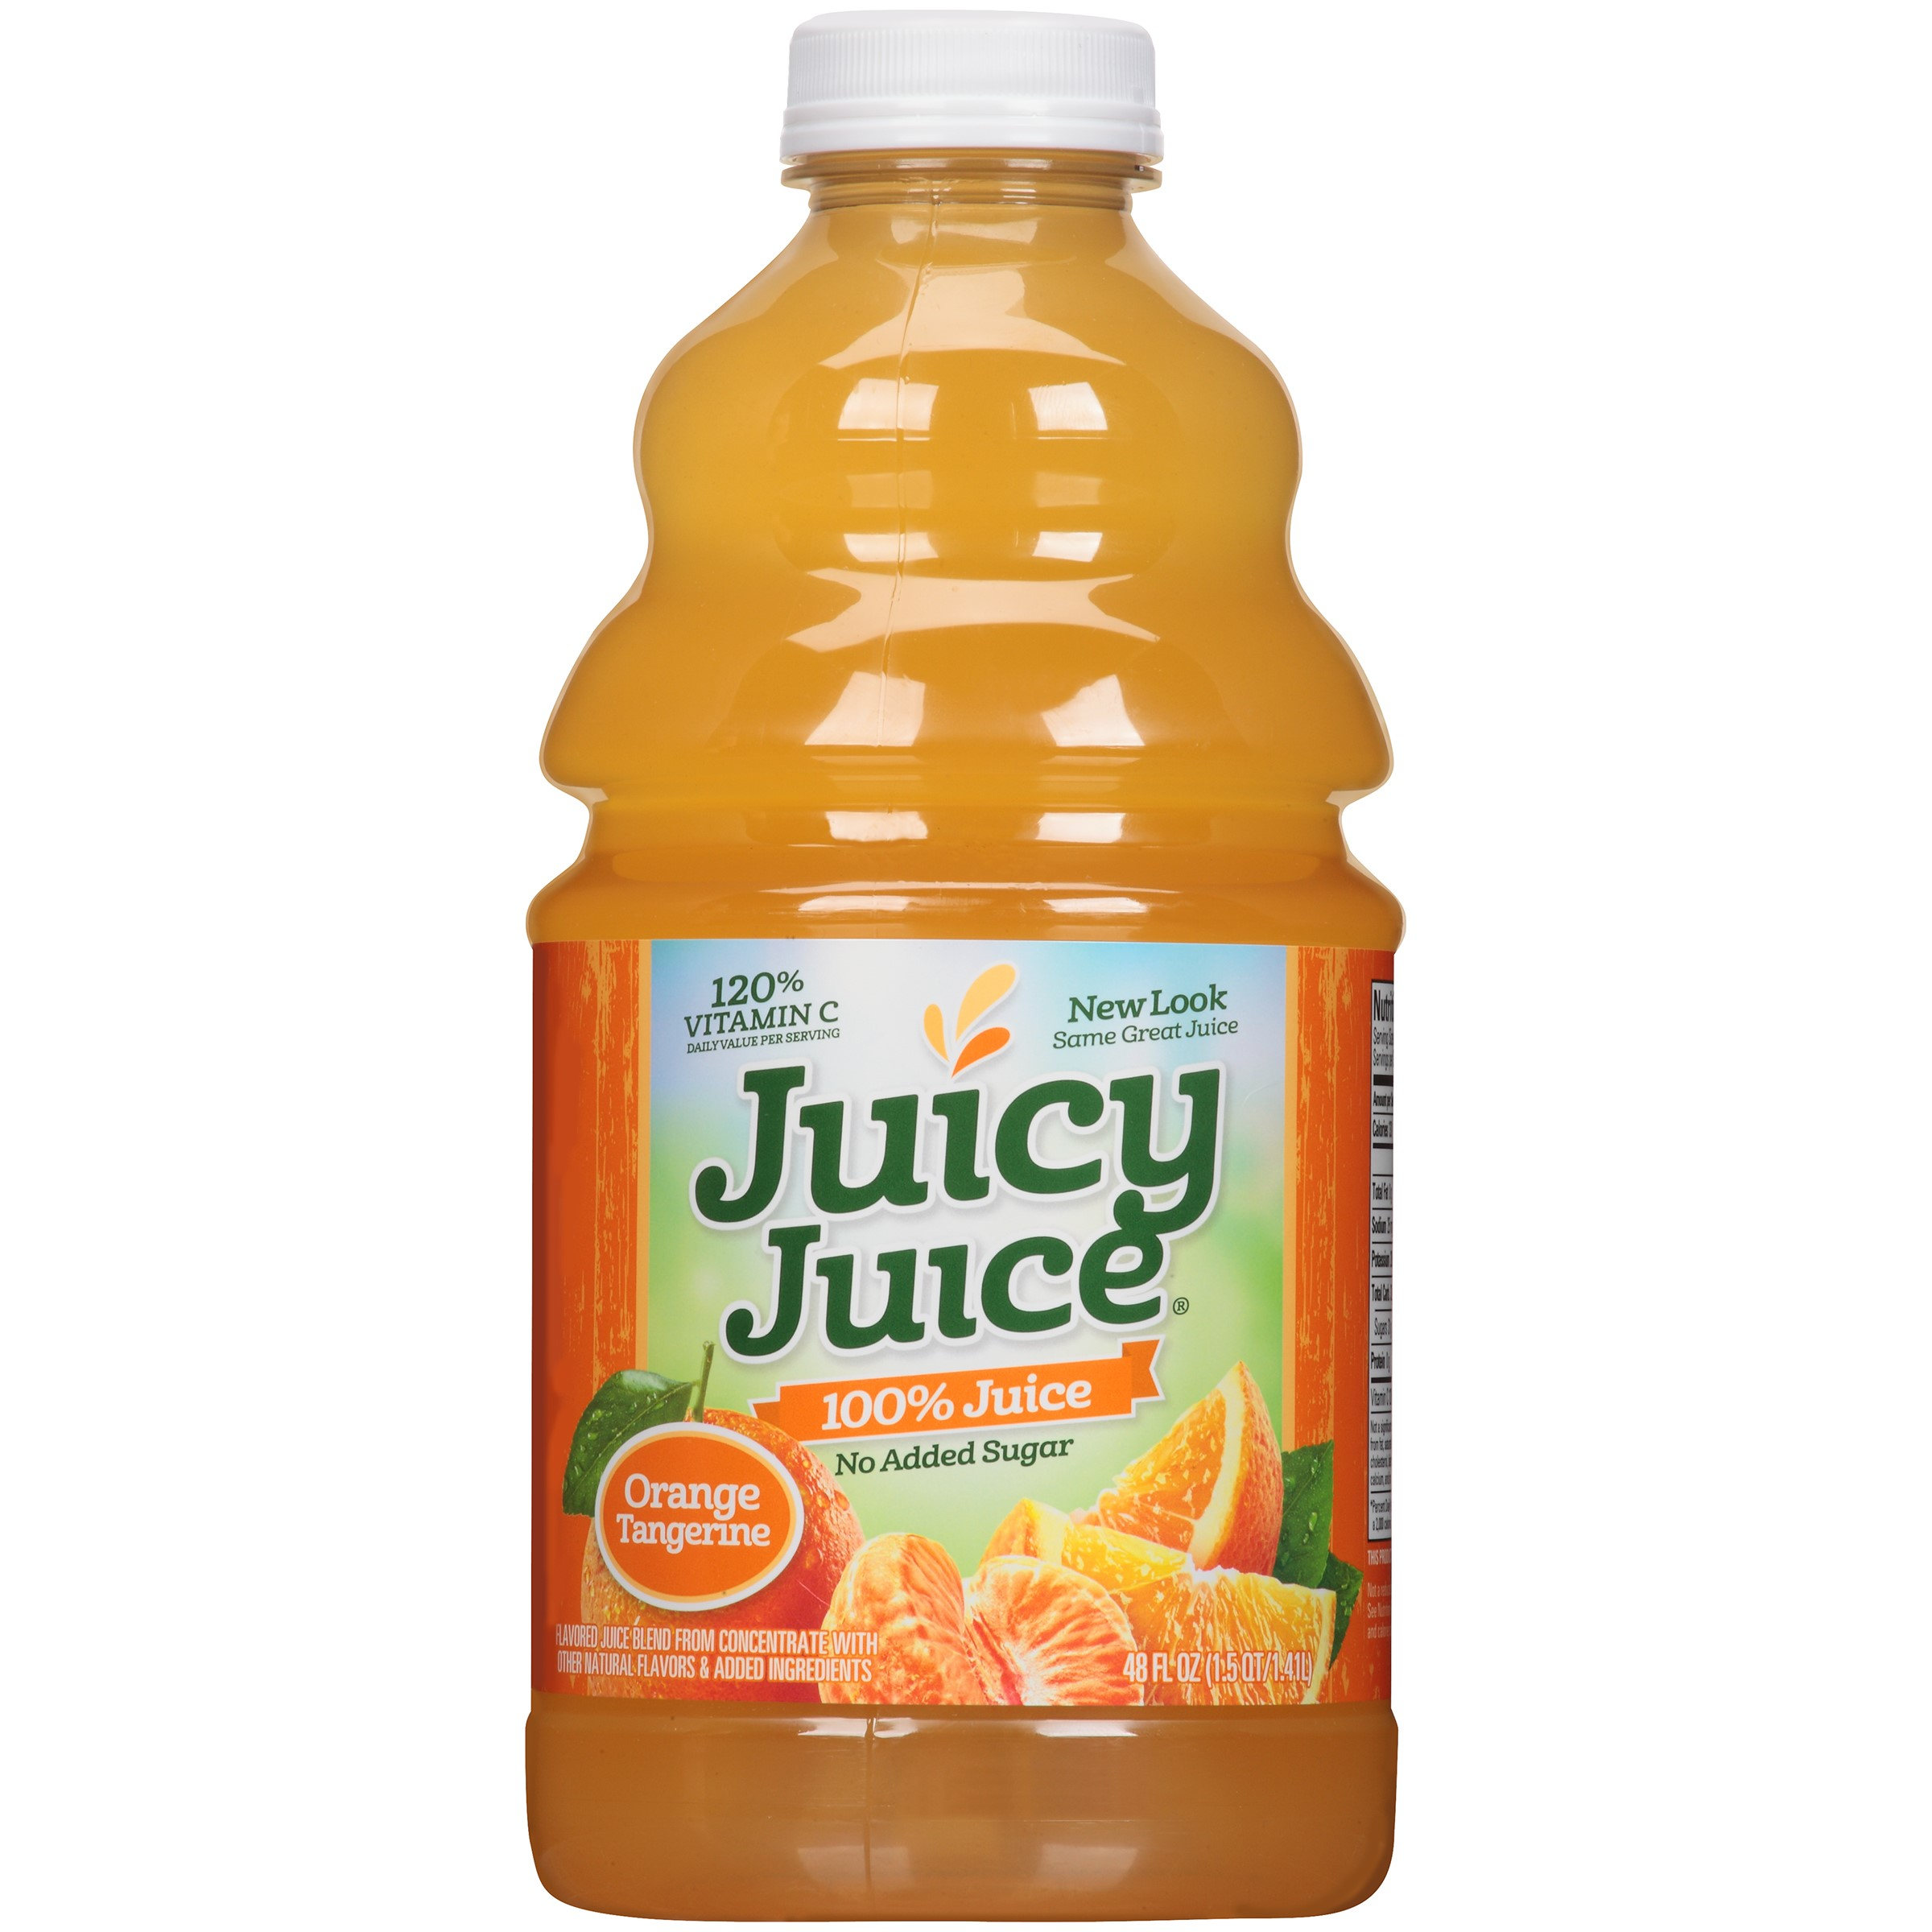 Juicy Juice 100% Juice, Orange Tangerine, 48 Fl Oz, 1 Count